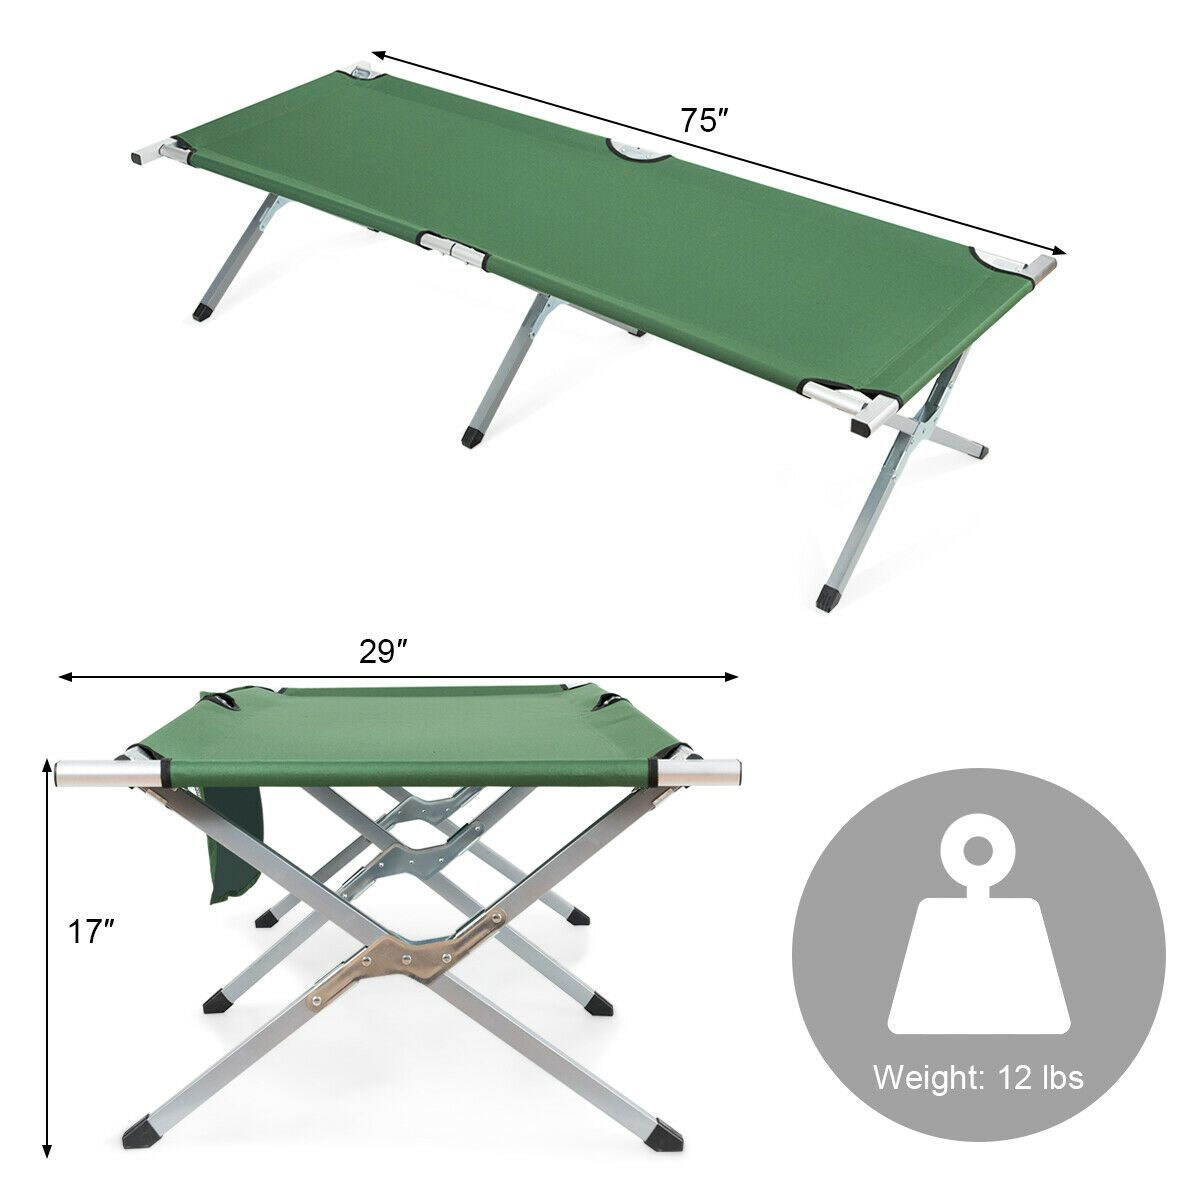 - Folding Camping Cot Heavy-duty Camp Bed With Carry Bag Camping